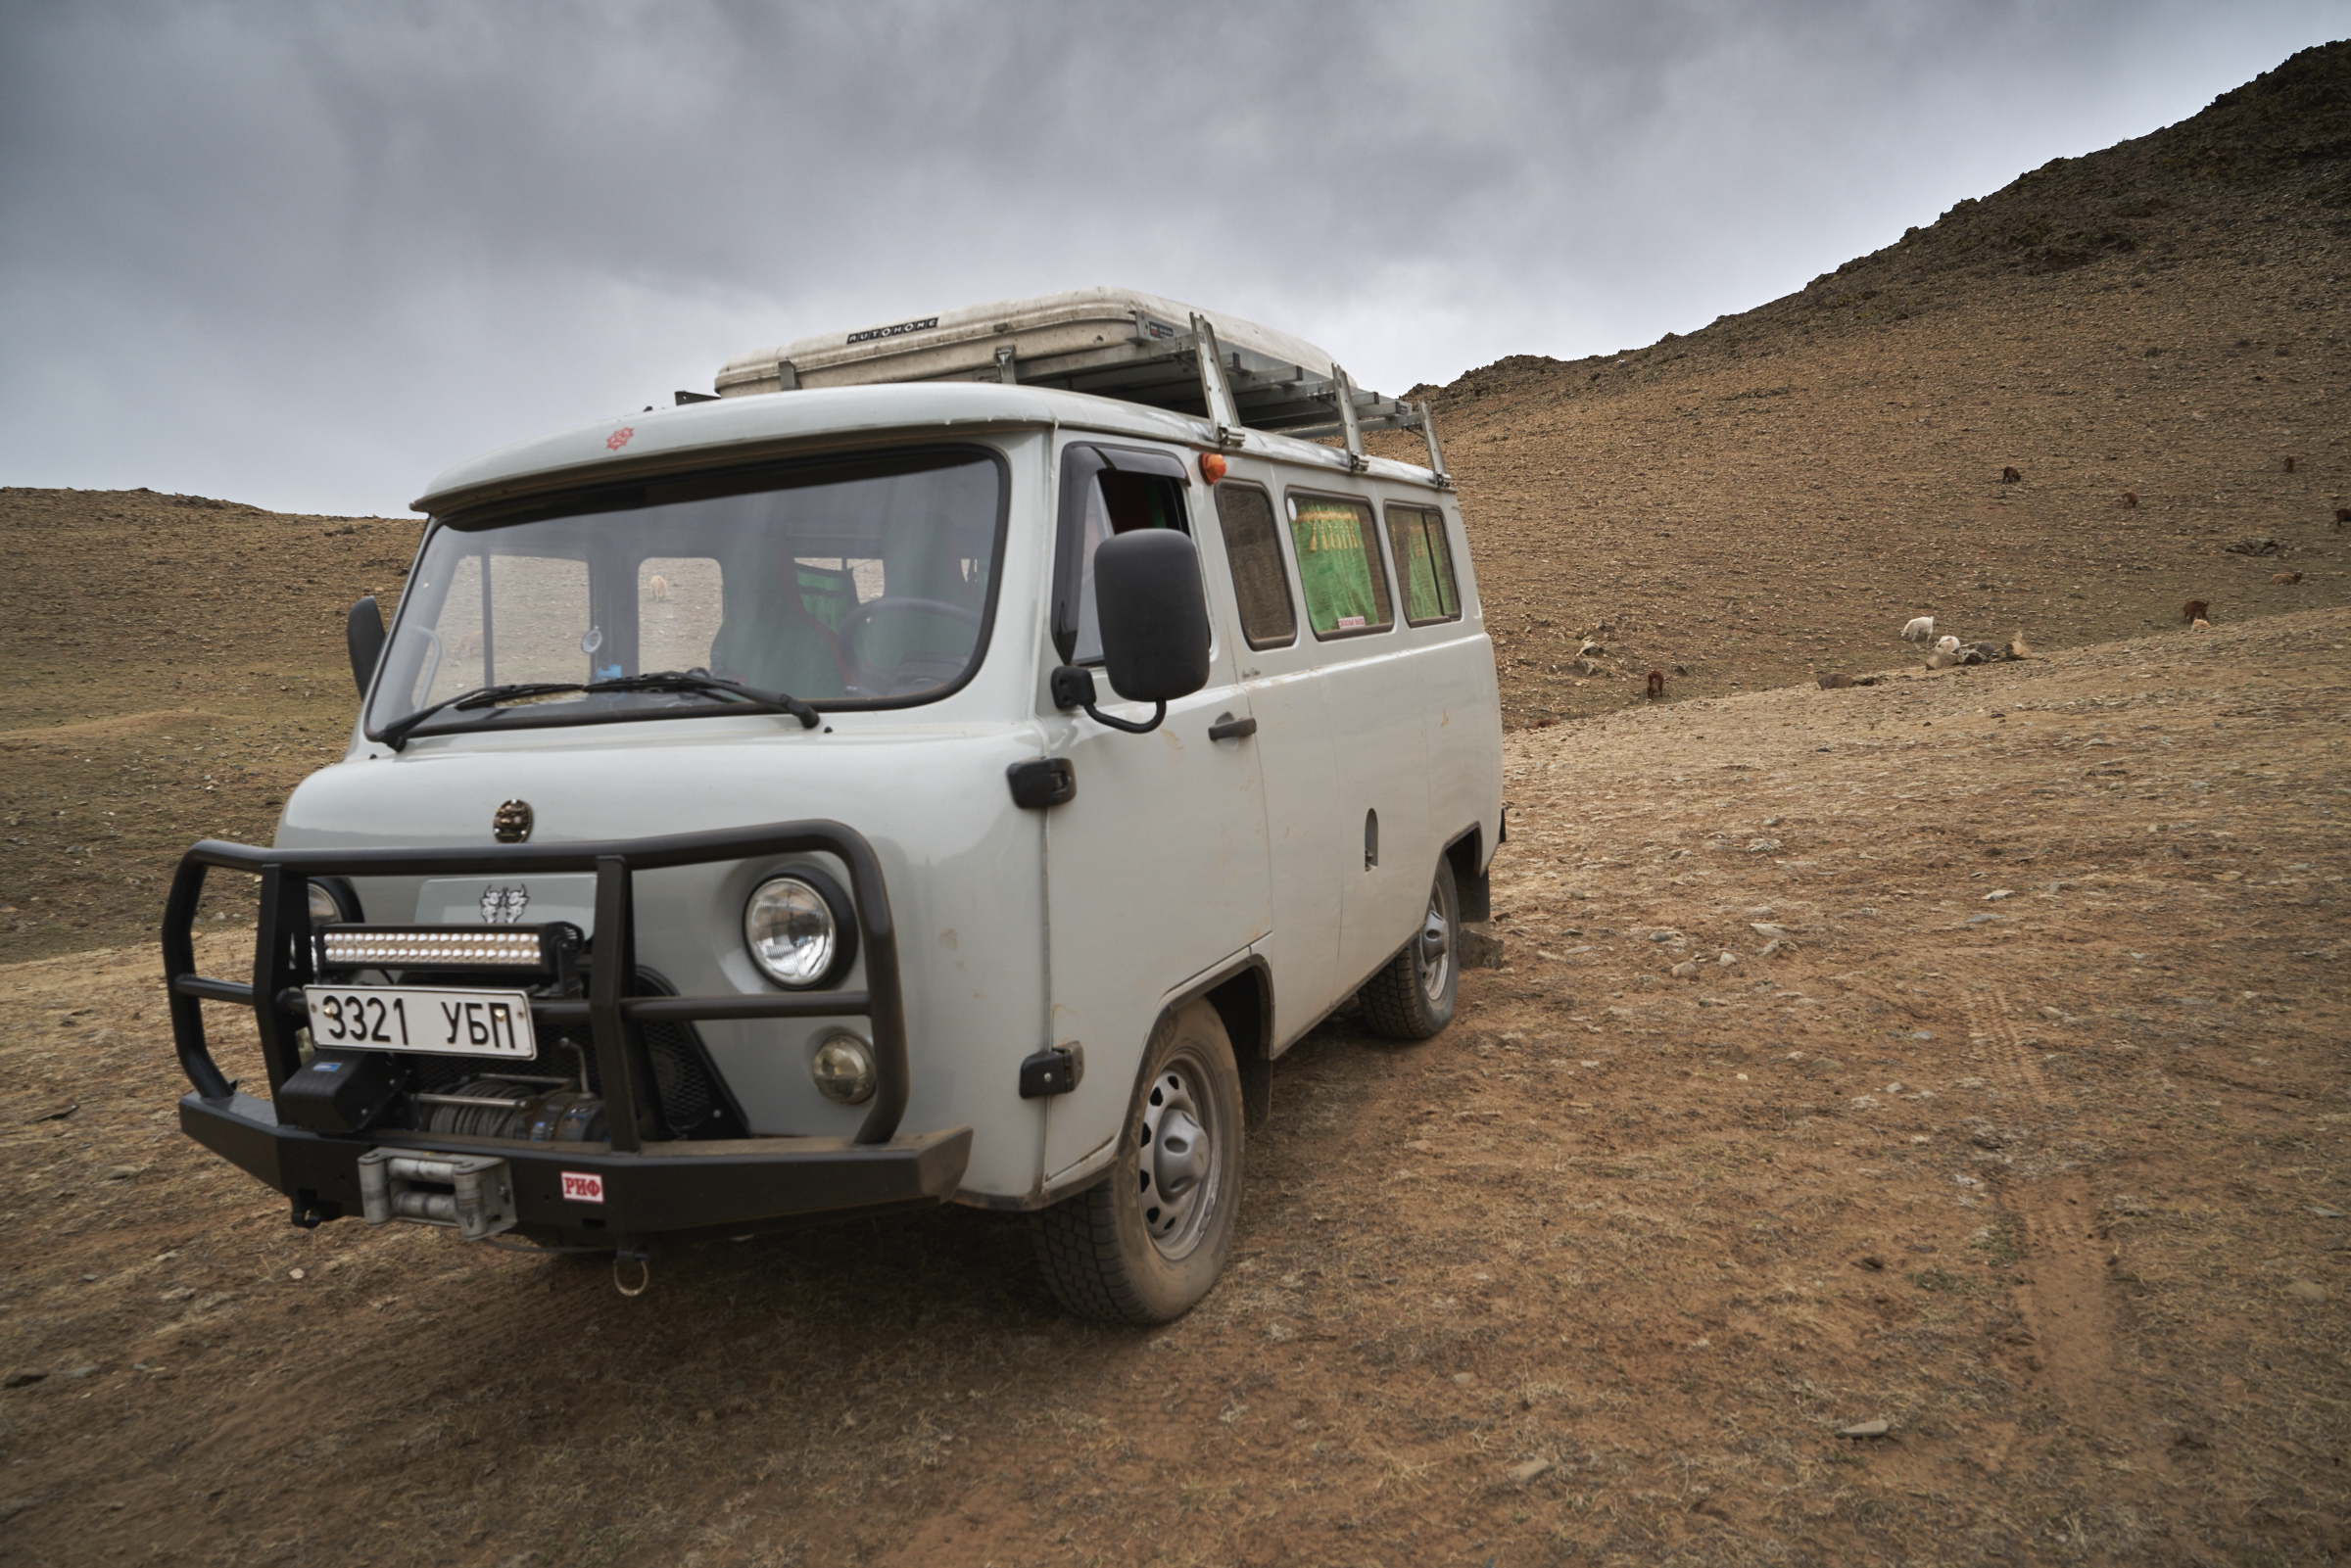 "UAZ, RUSSIAN VAN, 2014, PETROL, MECHANIC, 6-8 WILL FIT IN, GREAT OFF ROAD VEHICLE FOR A GROUP. ALL OUR CARS ARE EQUIPPED  WITH ""ARB"" BUMPER AND WINCHES. WE'LL PROVIDE TWO EXTRA TIRES. ROOF TENTS ARE OPTIONAL AND IT CAN BE INSTALLED IN EVERY VEHICLE. AND WE HAVE ""LUGGAGE STORAGE SERVICE"" WITH FREE OF CHARGE."